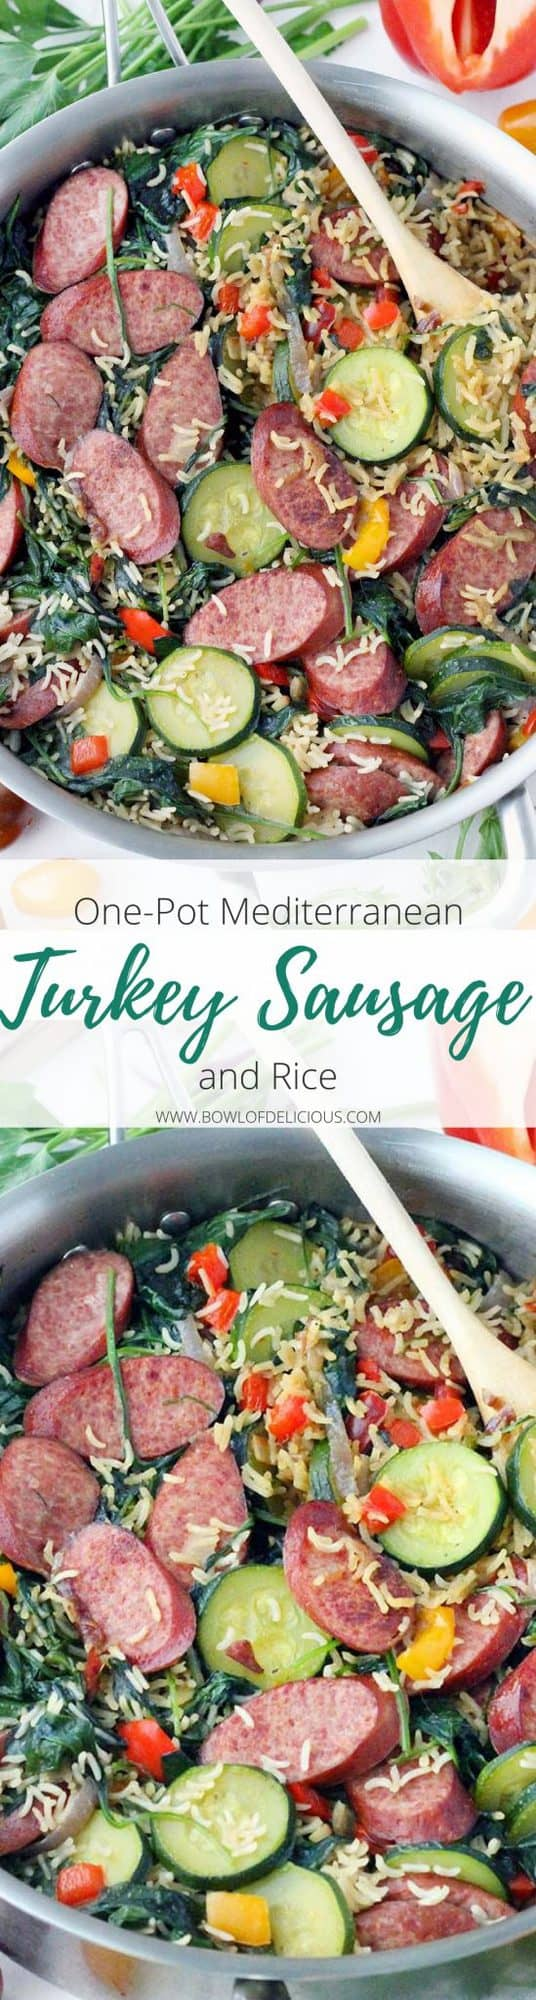 This one-pot Mediterranean Turkey Sausage and Rice is a veggie-packed, 30-minute dinner that the whole family will love! It's extra delicious topped with feta cheese, fresh herbs, and chopped sweet tomatoes. #MediterraneanDiet #OnePotMeals #TurkeySausage #KidFriendly #30MinuteMeals #EasyDinner #MediterraneanRecipe